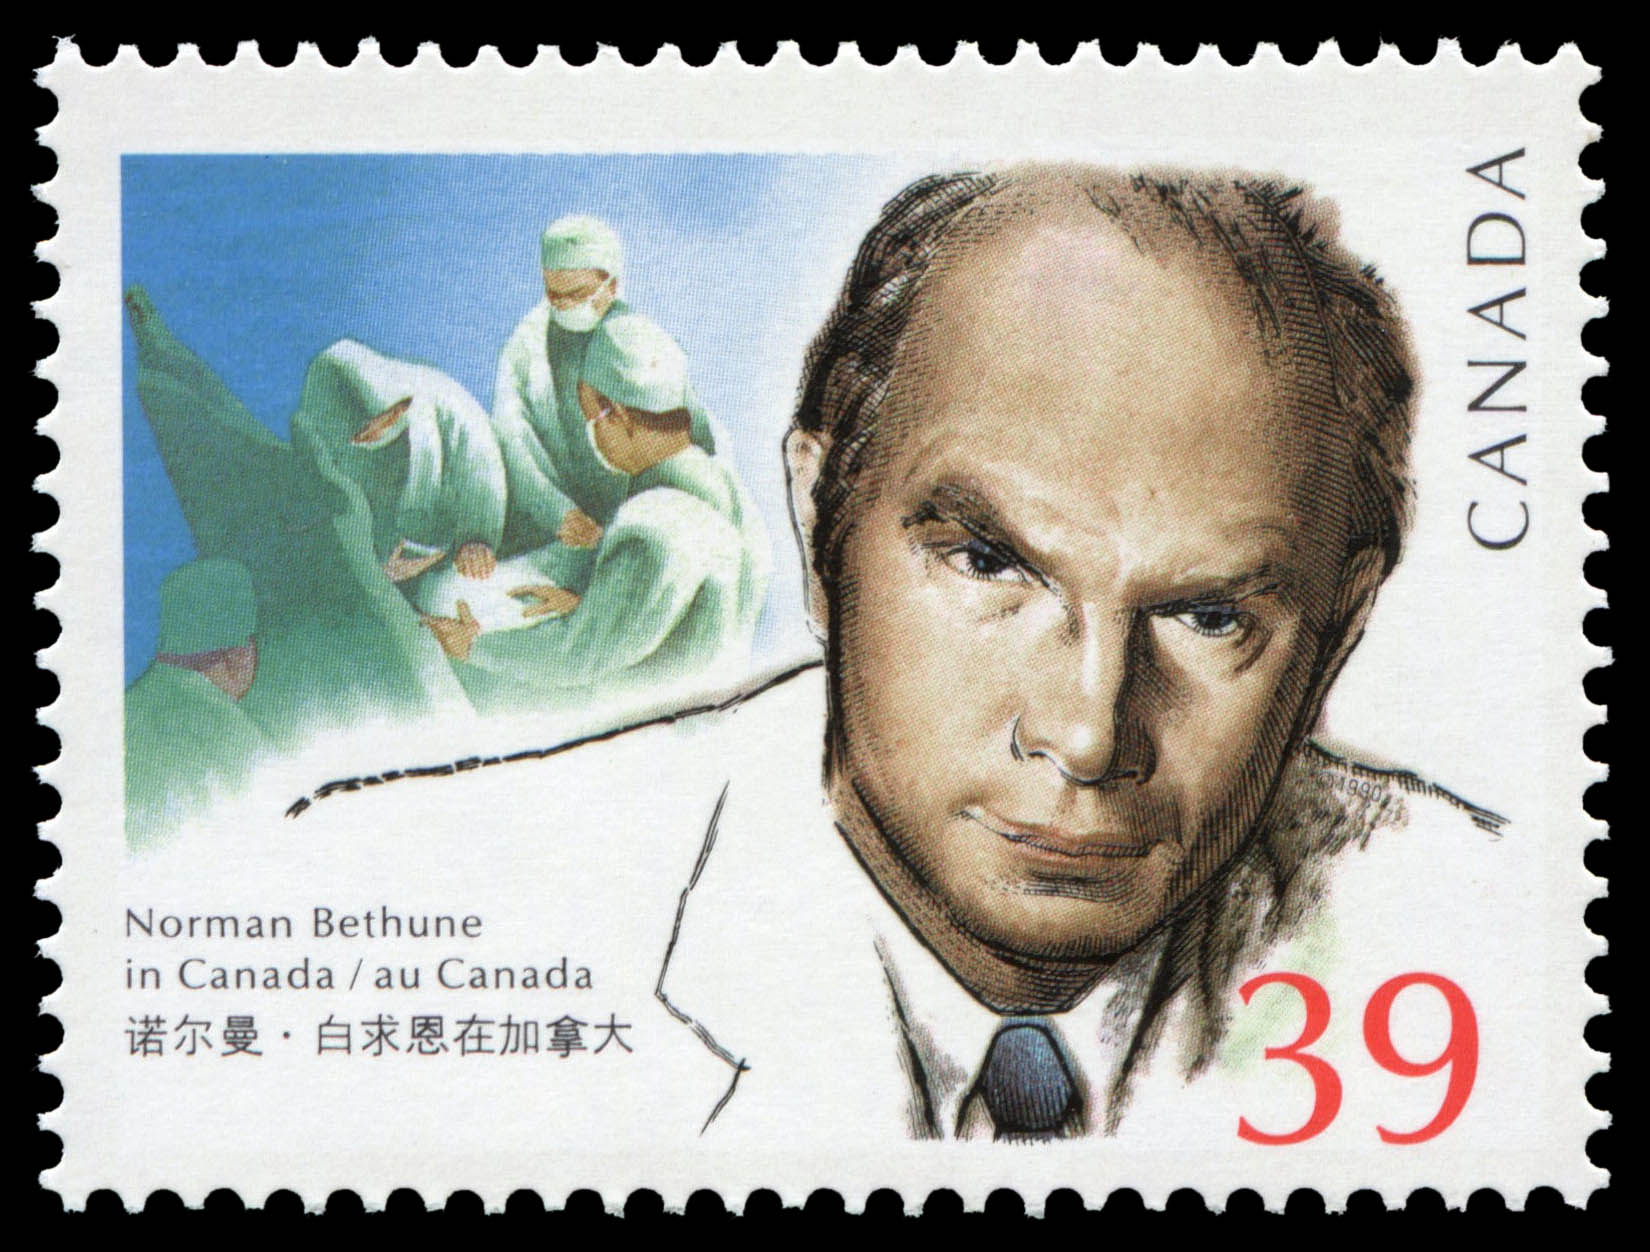 Norman Bethune in Canada Canada Postage Stamp